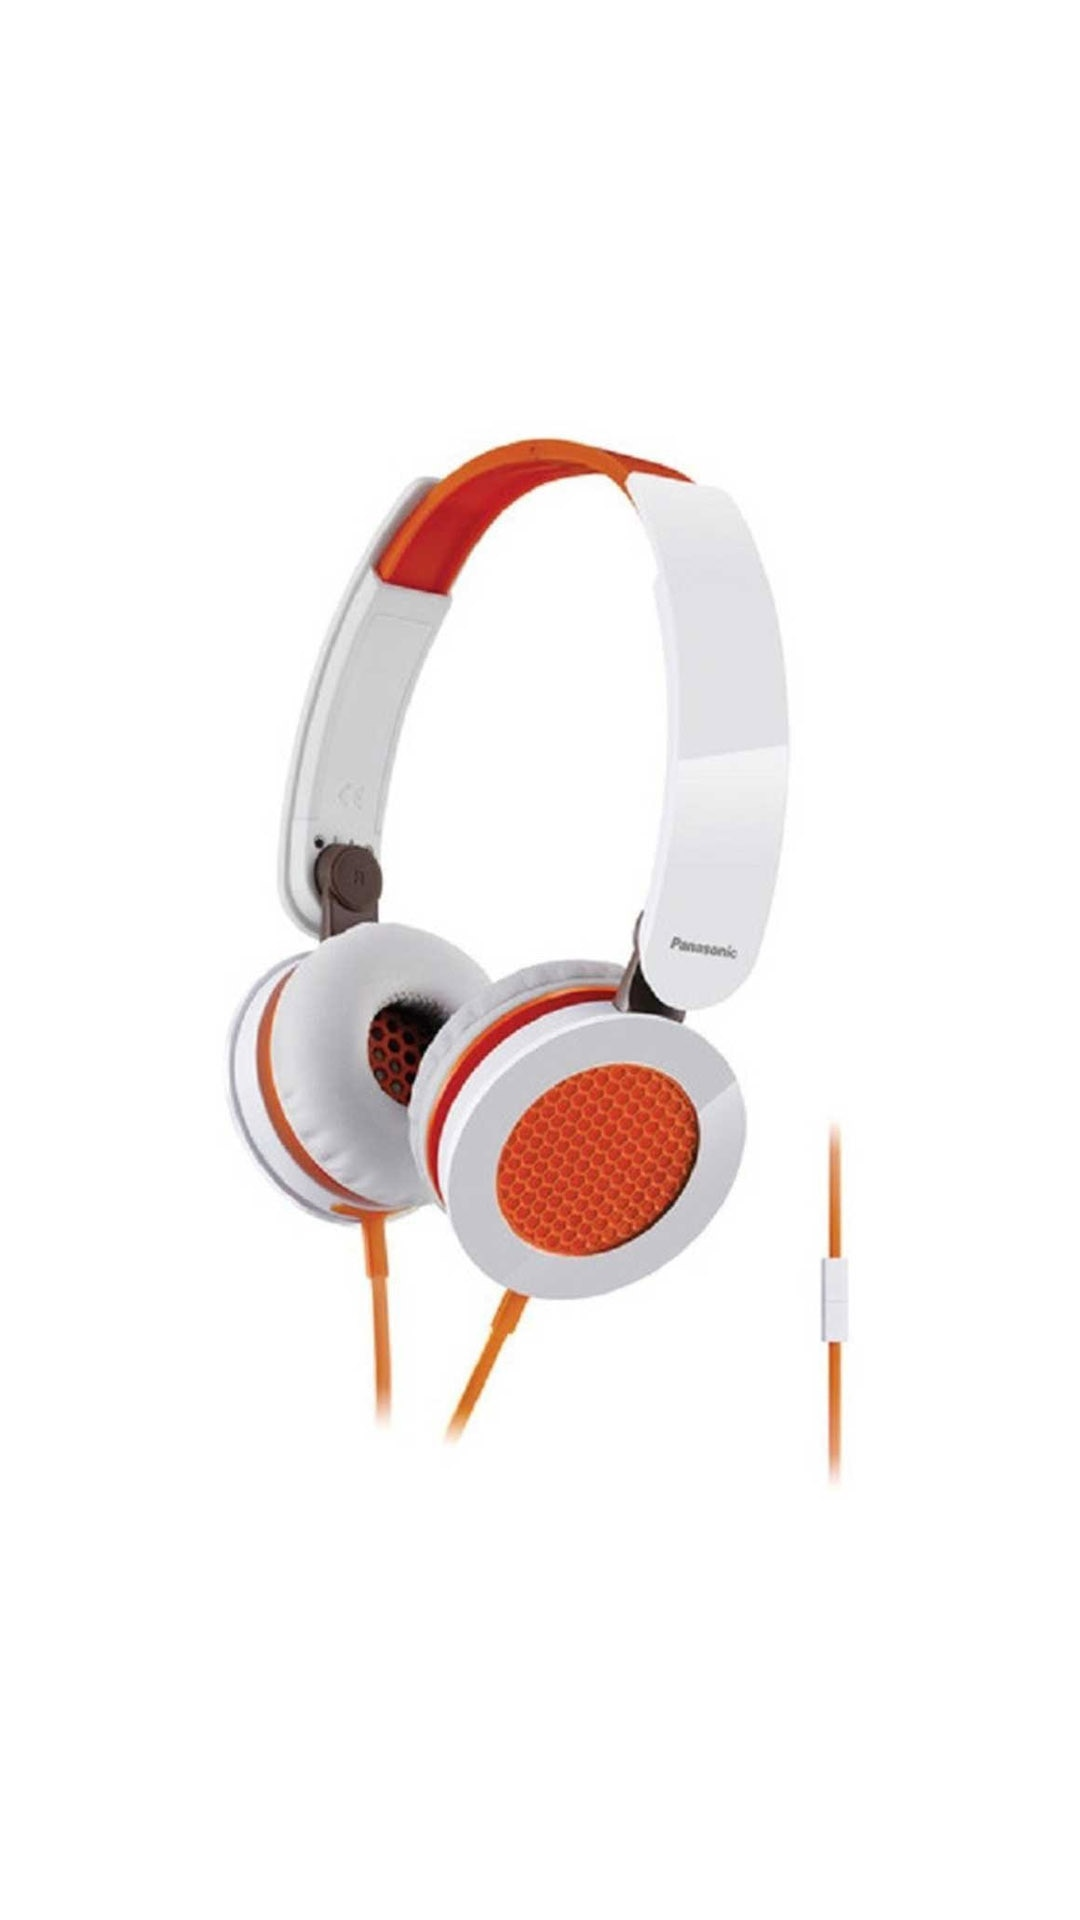 Panasonic RP-HXS200ME-D Wired Over Ear Headphone (Orange & White)